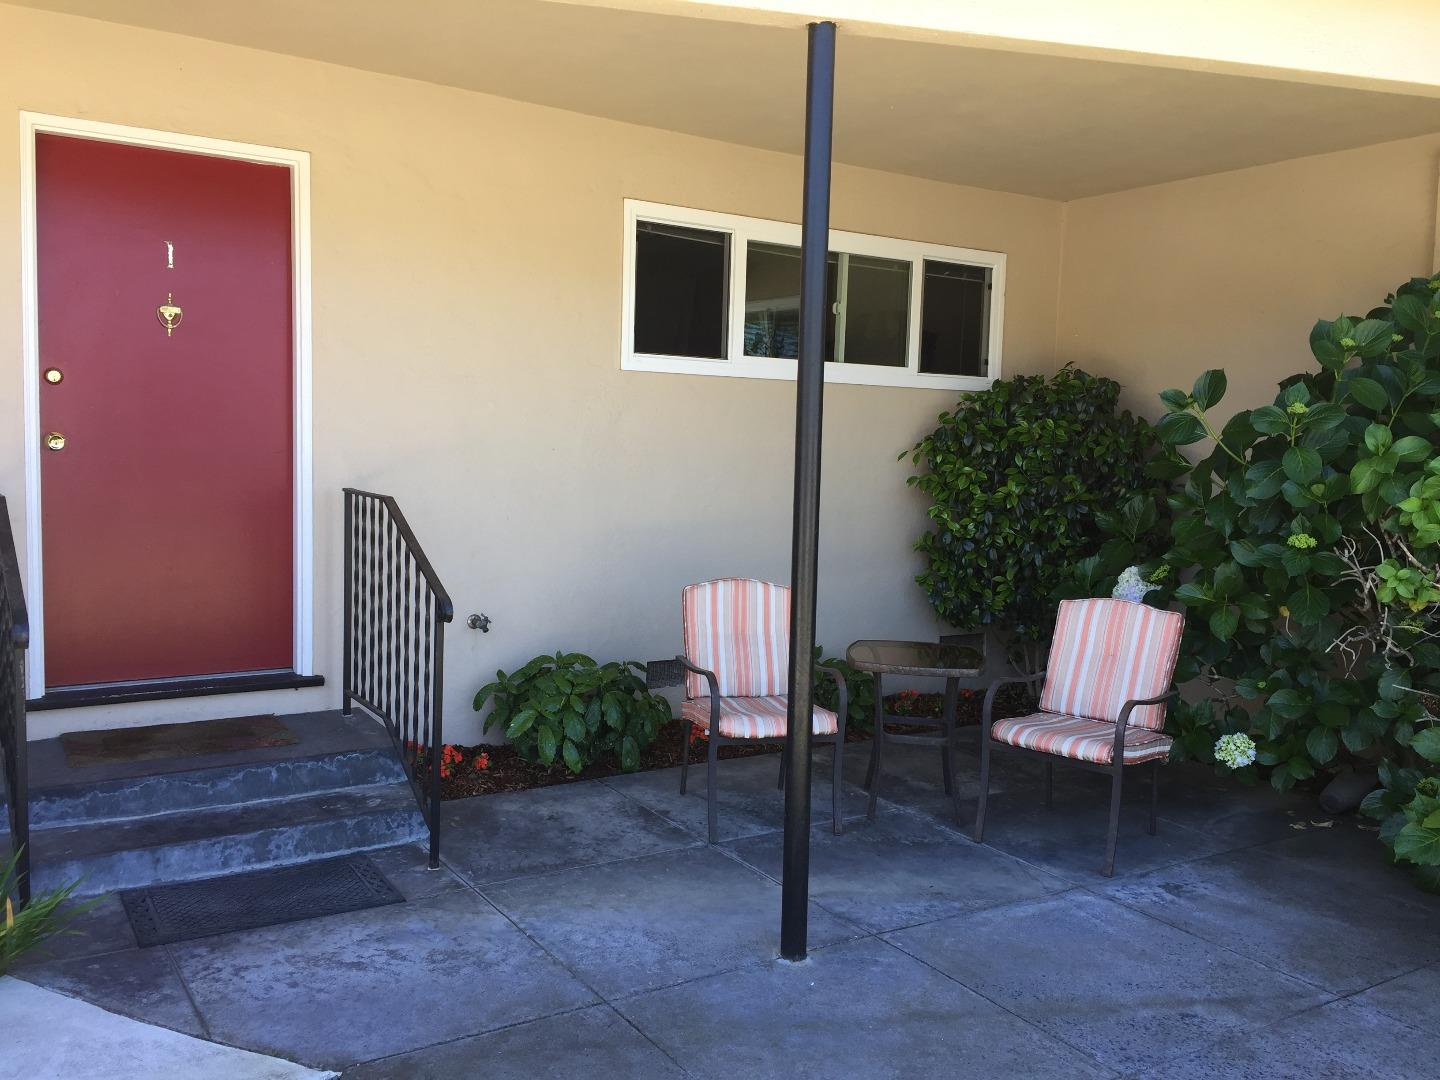 Additional photo for property listing at 911 38th Avenue  Santa Cruz, California 95062 United States